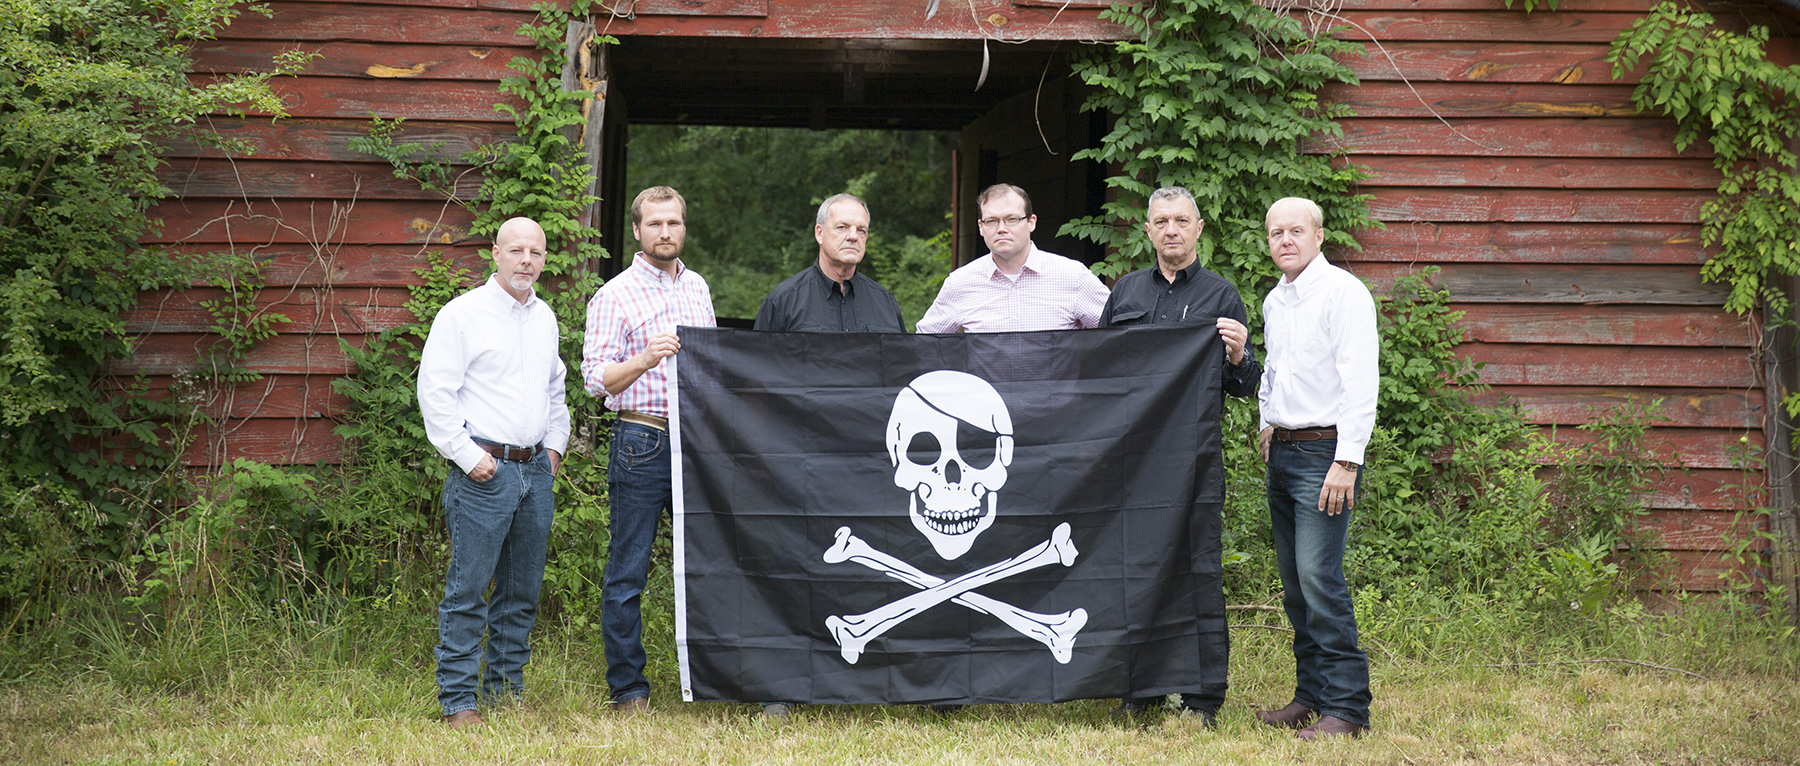 pirate-flag-team